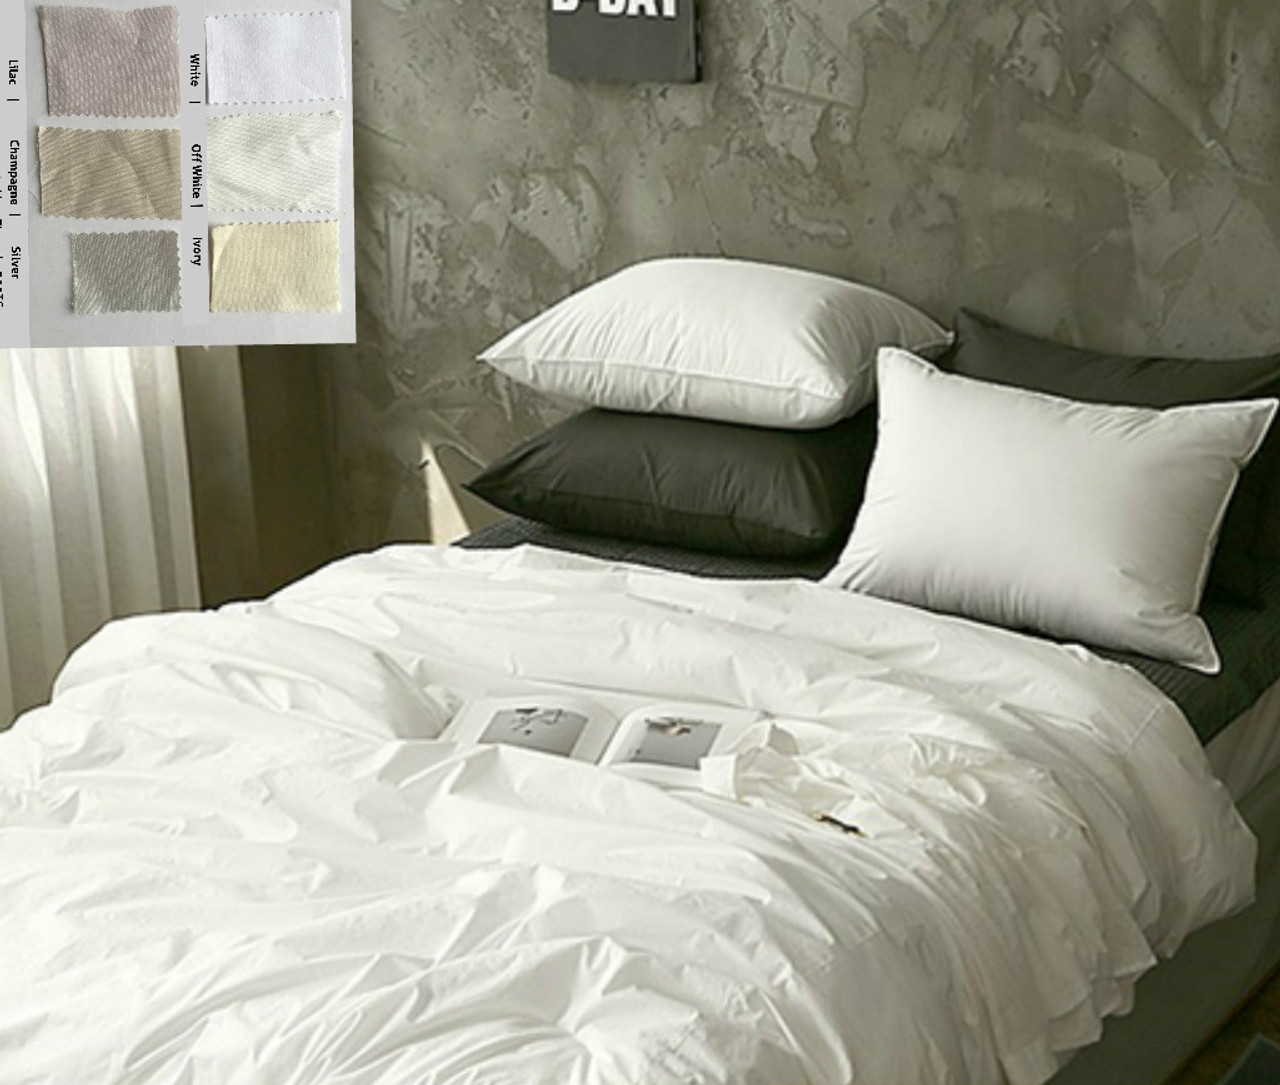 268ce665dfac Pima Cotton duvet cover, available in white, off white, ivory, lilac